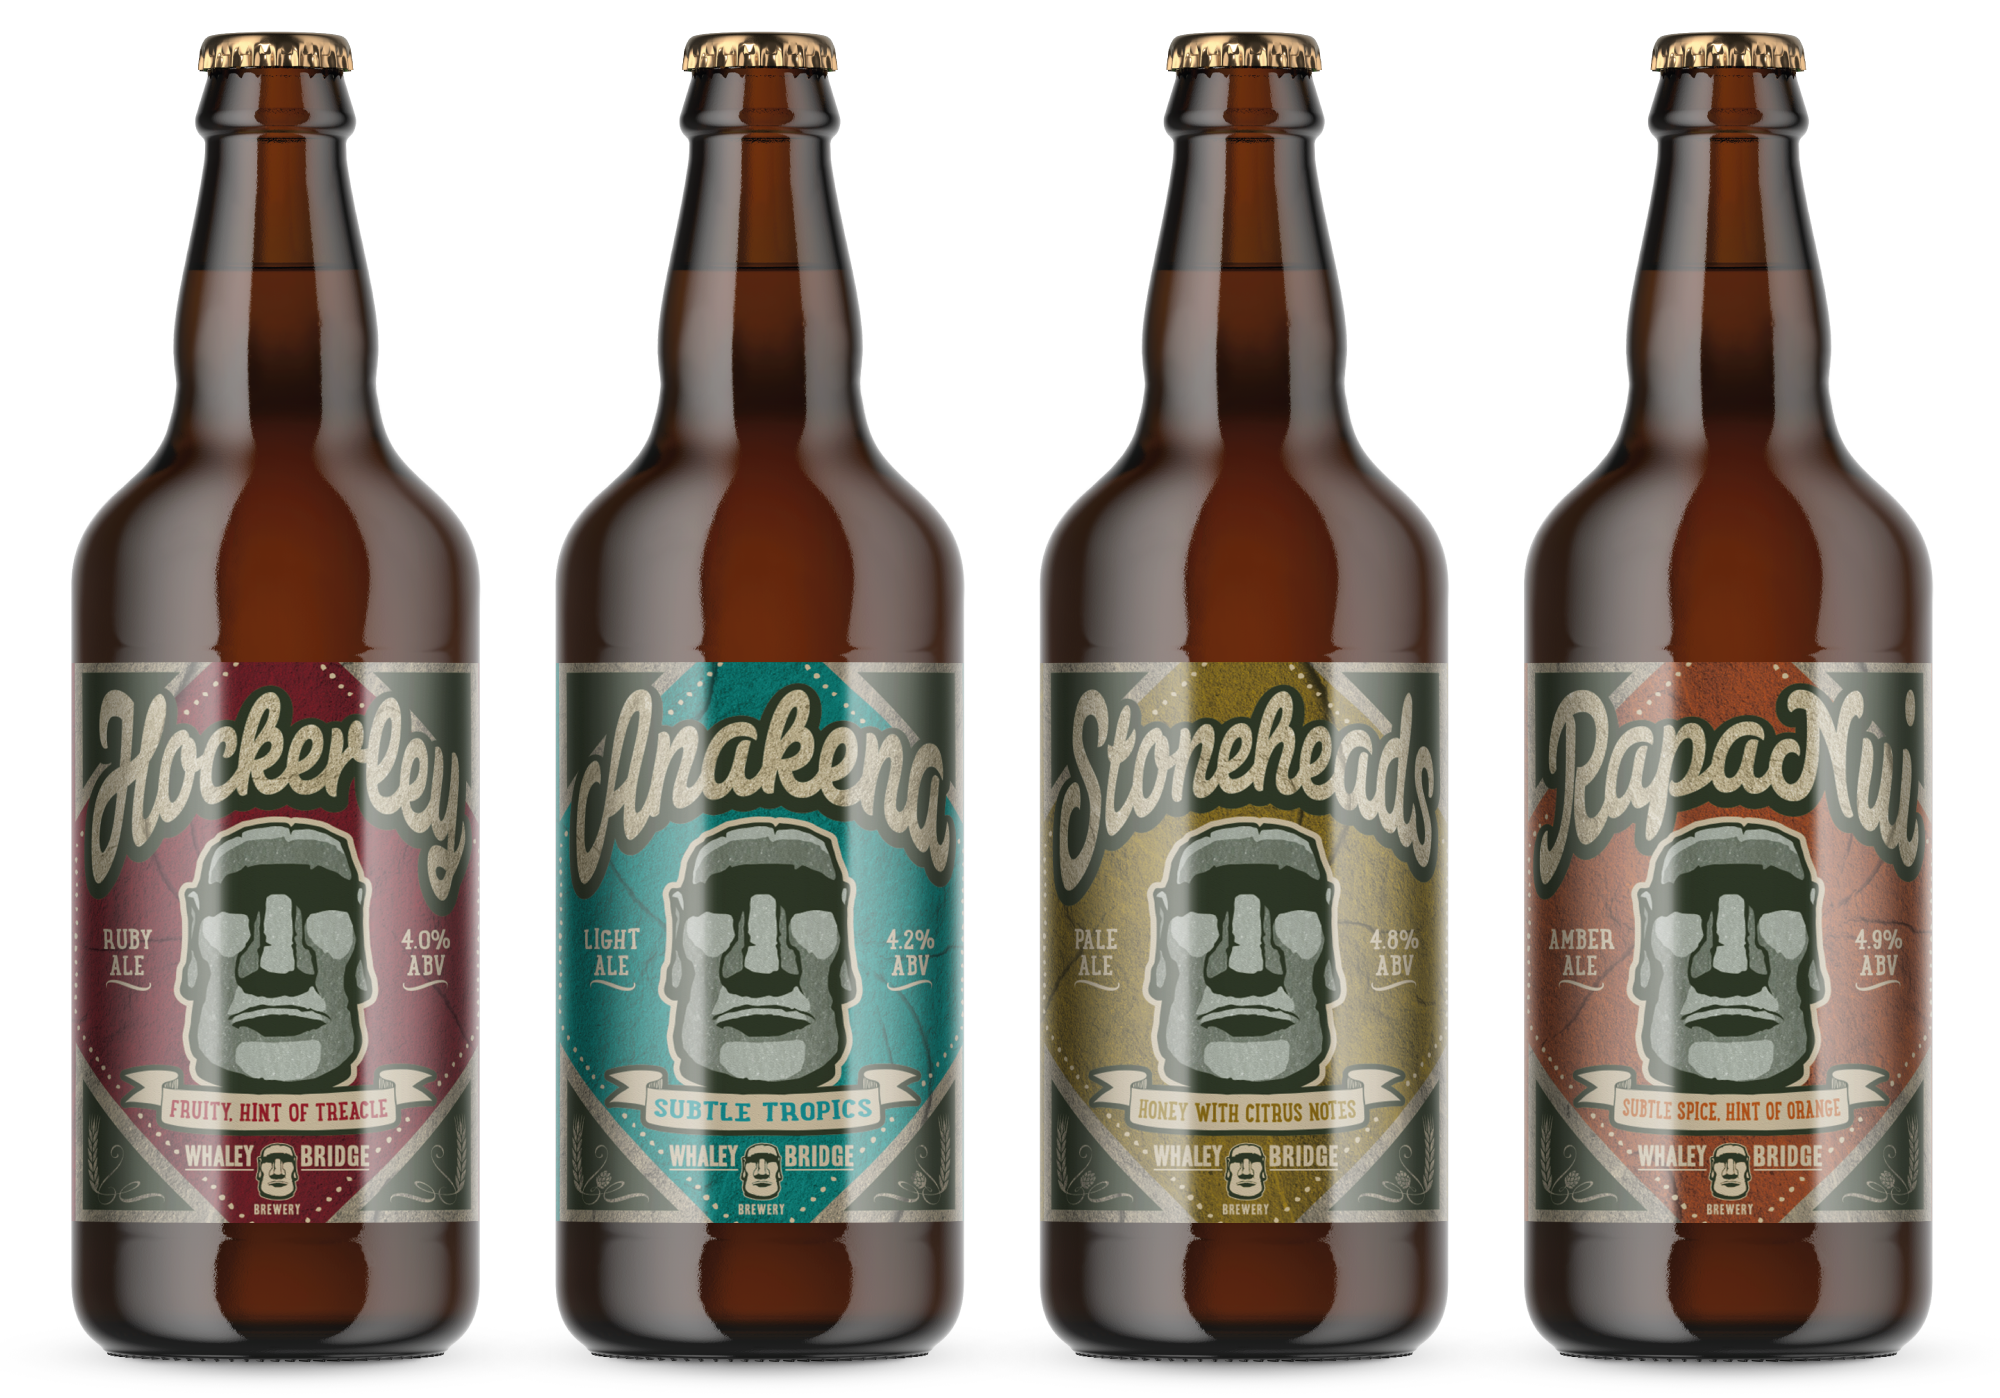 Whaley Bridge Bottle Label Desgins by AD Profile